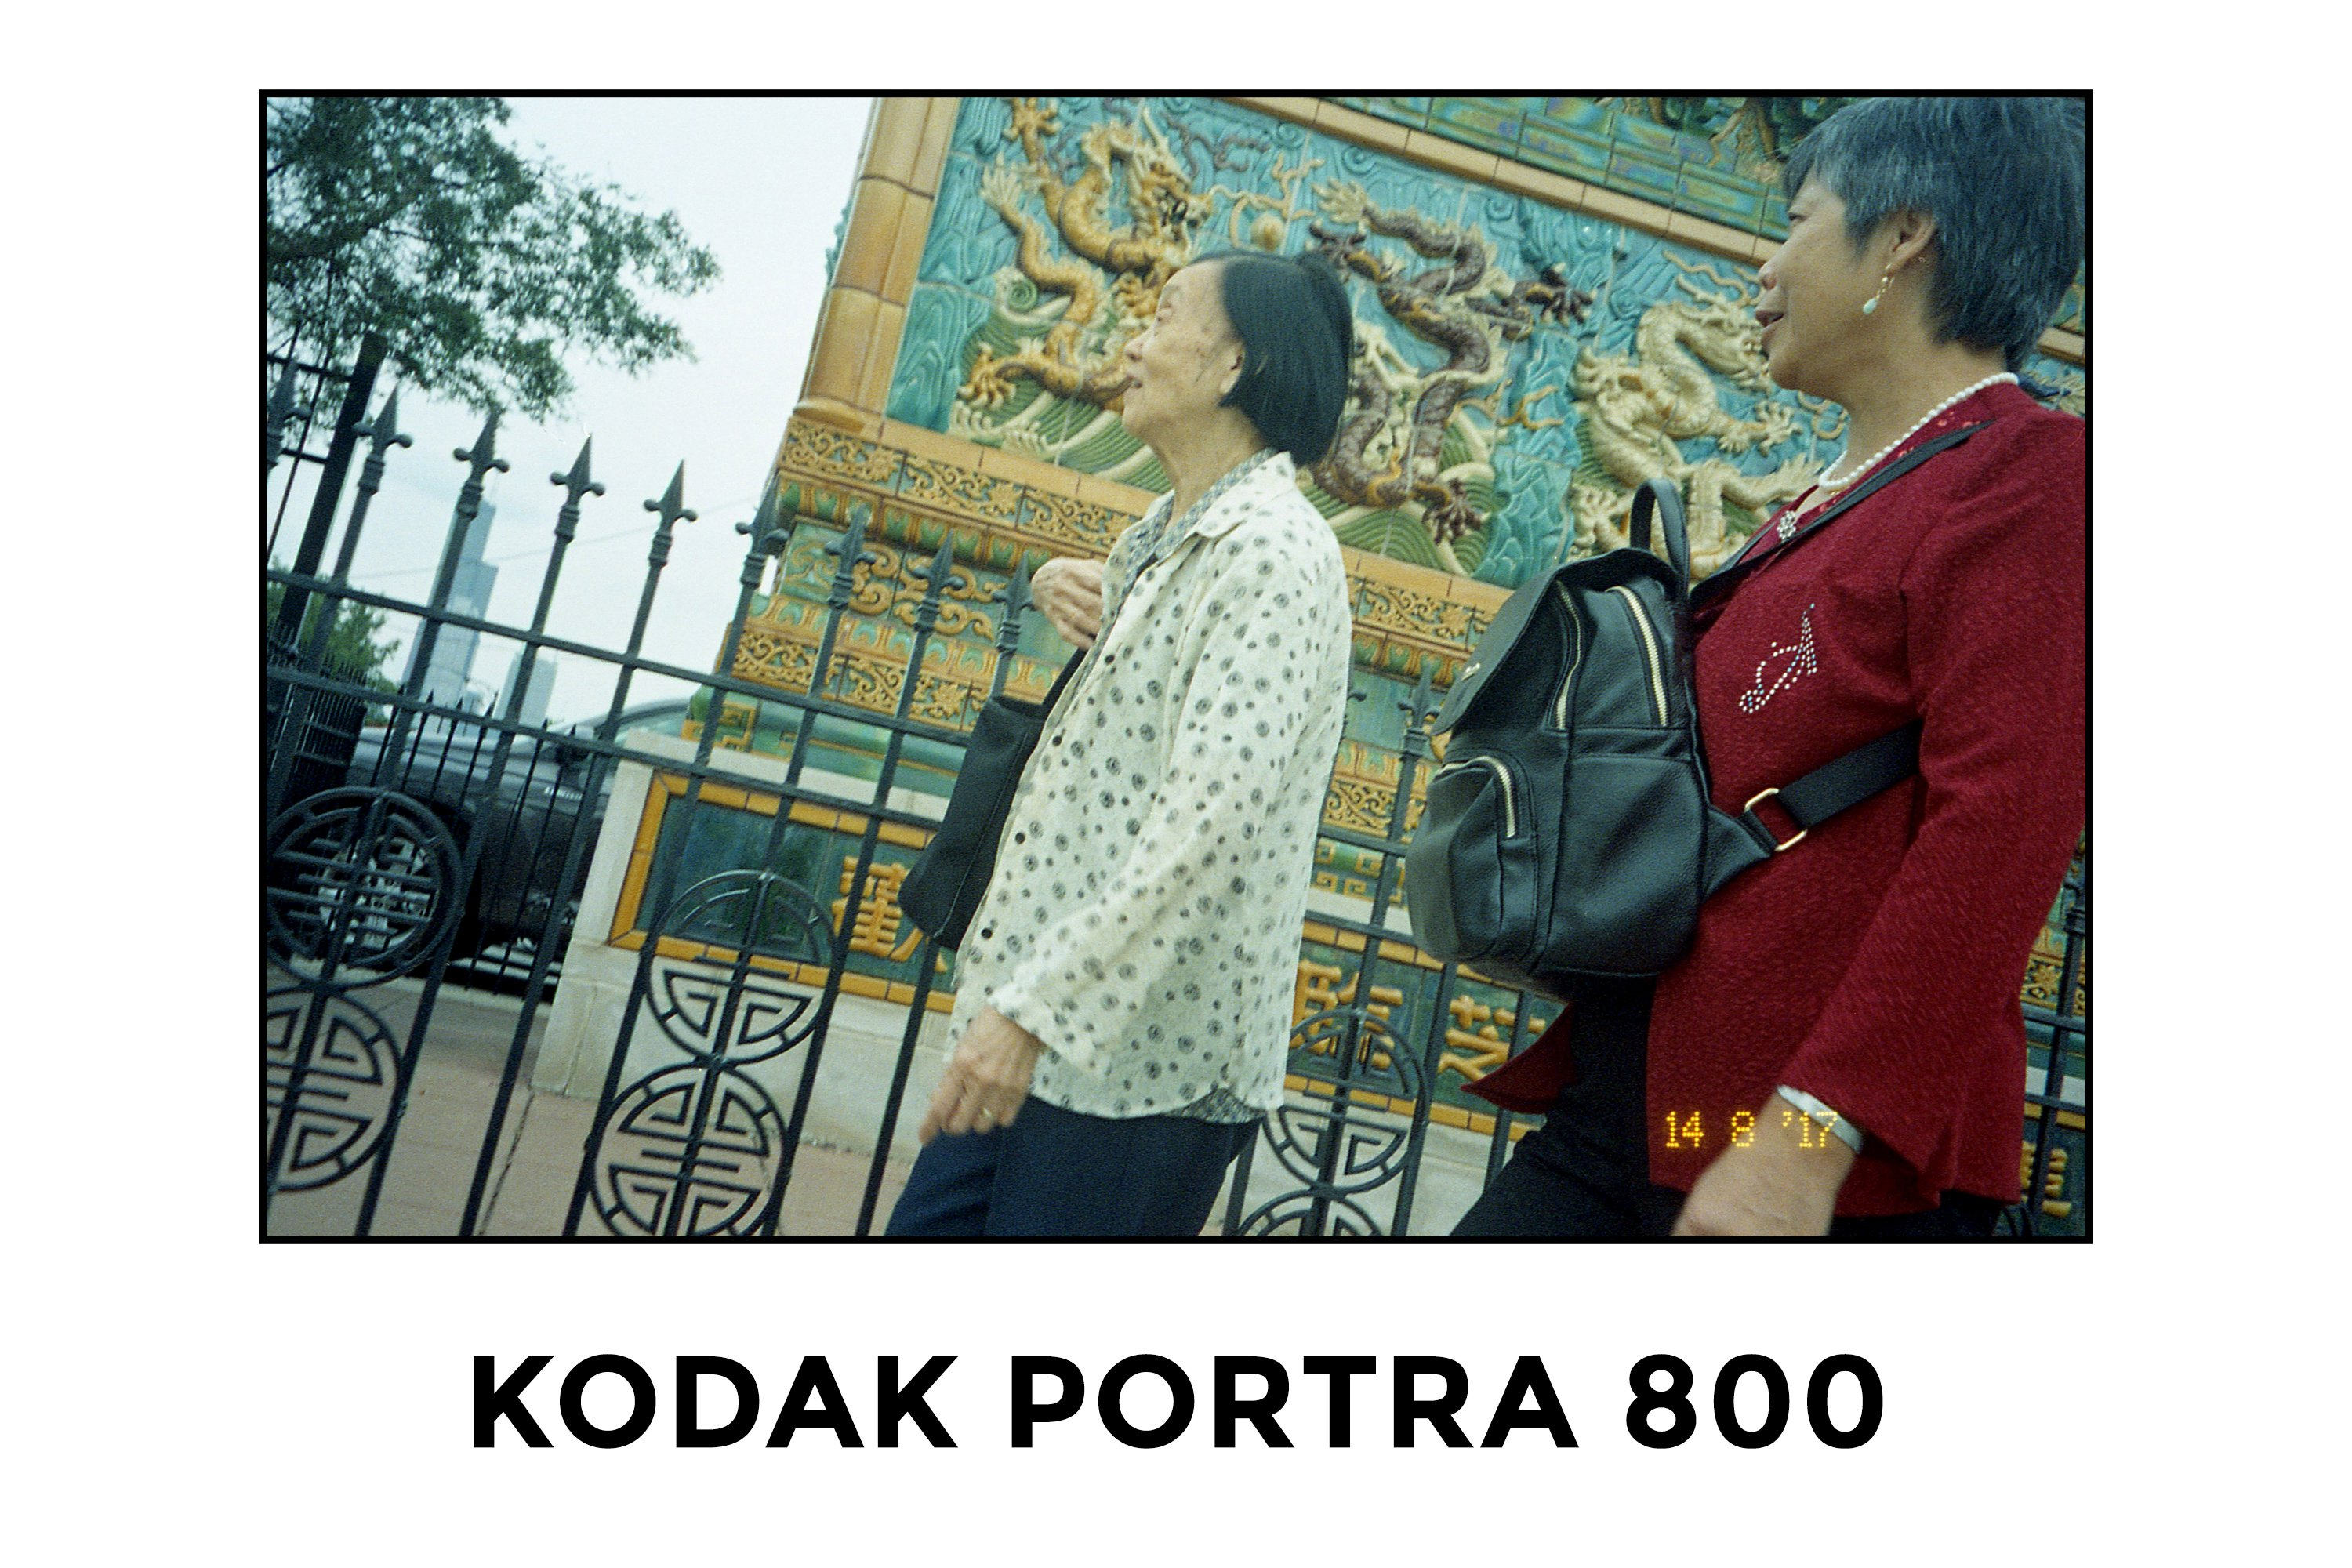 Kodak Portra 800 (2)- Fuji Superia 800 vs. Kodak Portra 800 Film Stock Review - FilterGrade Blog